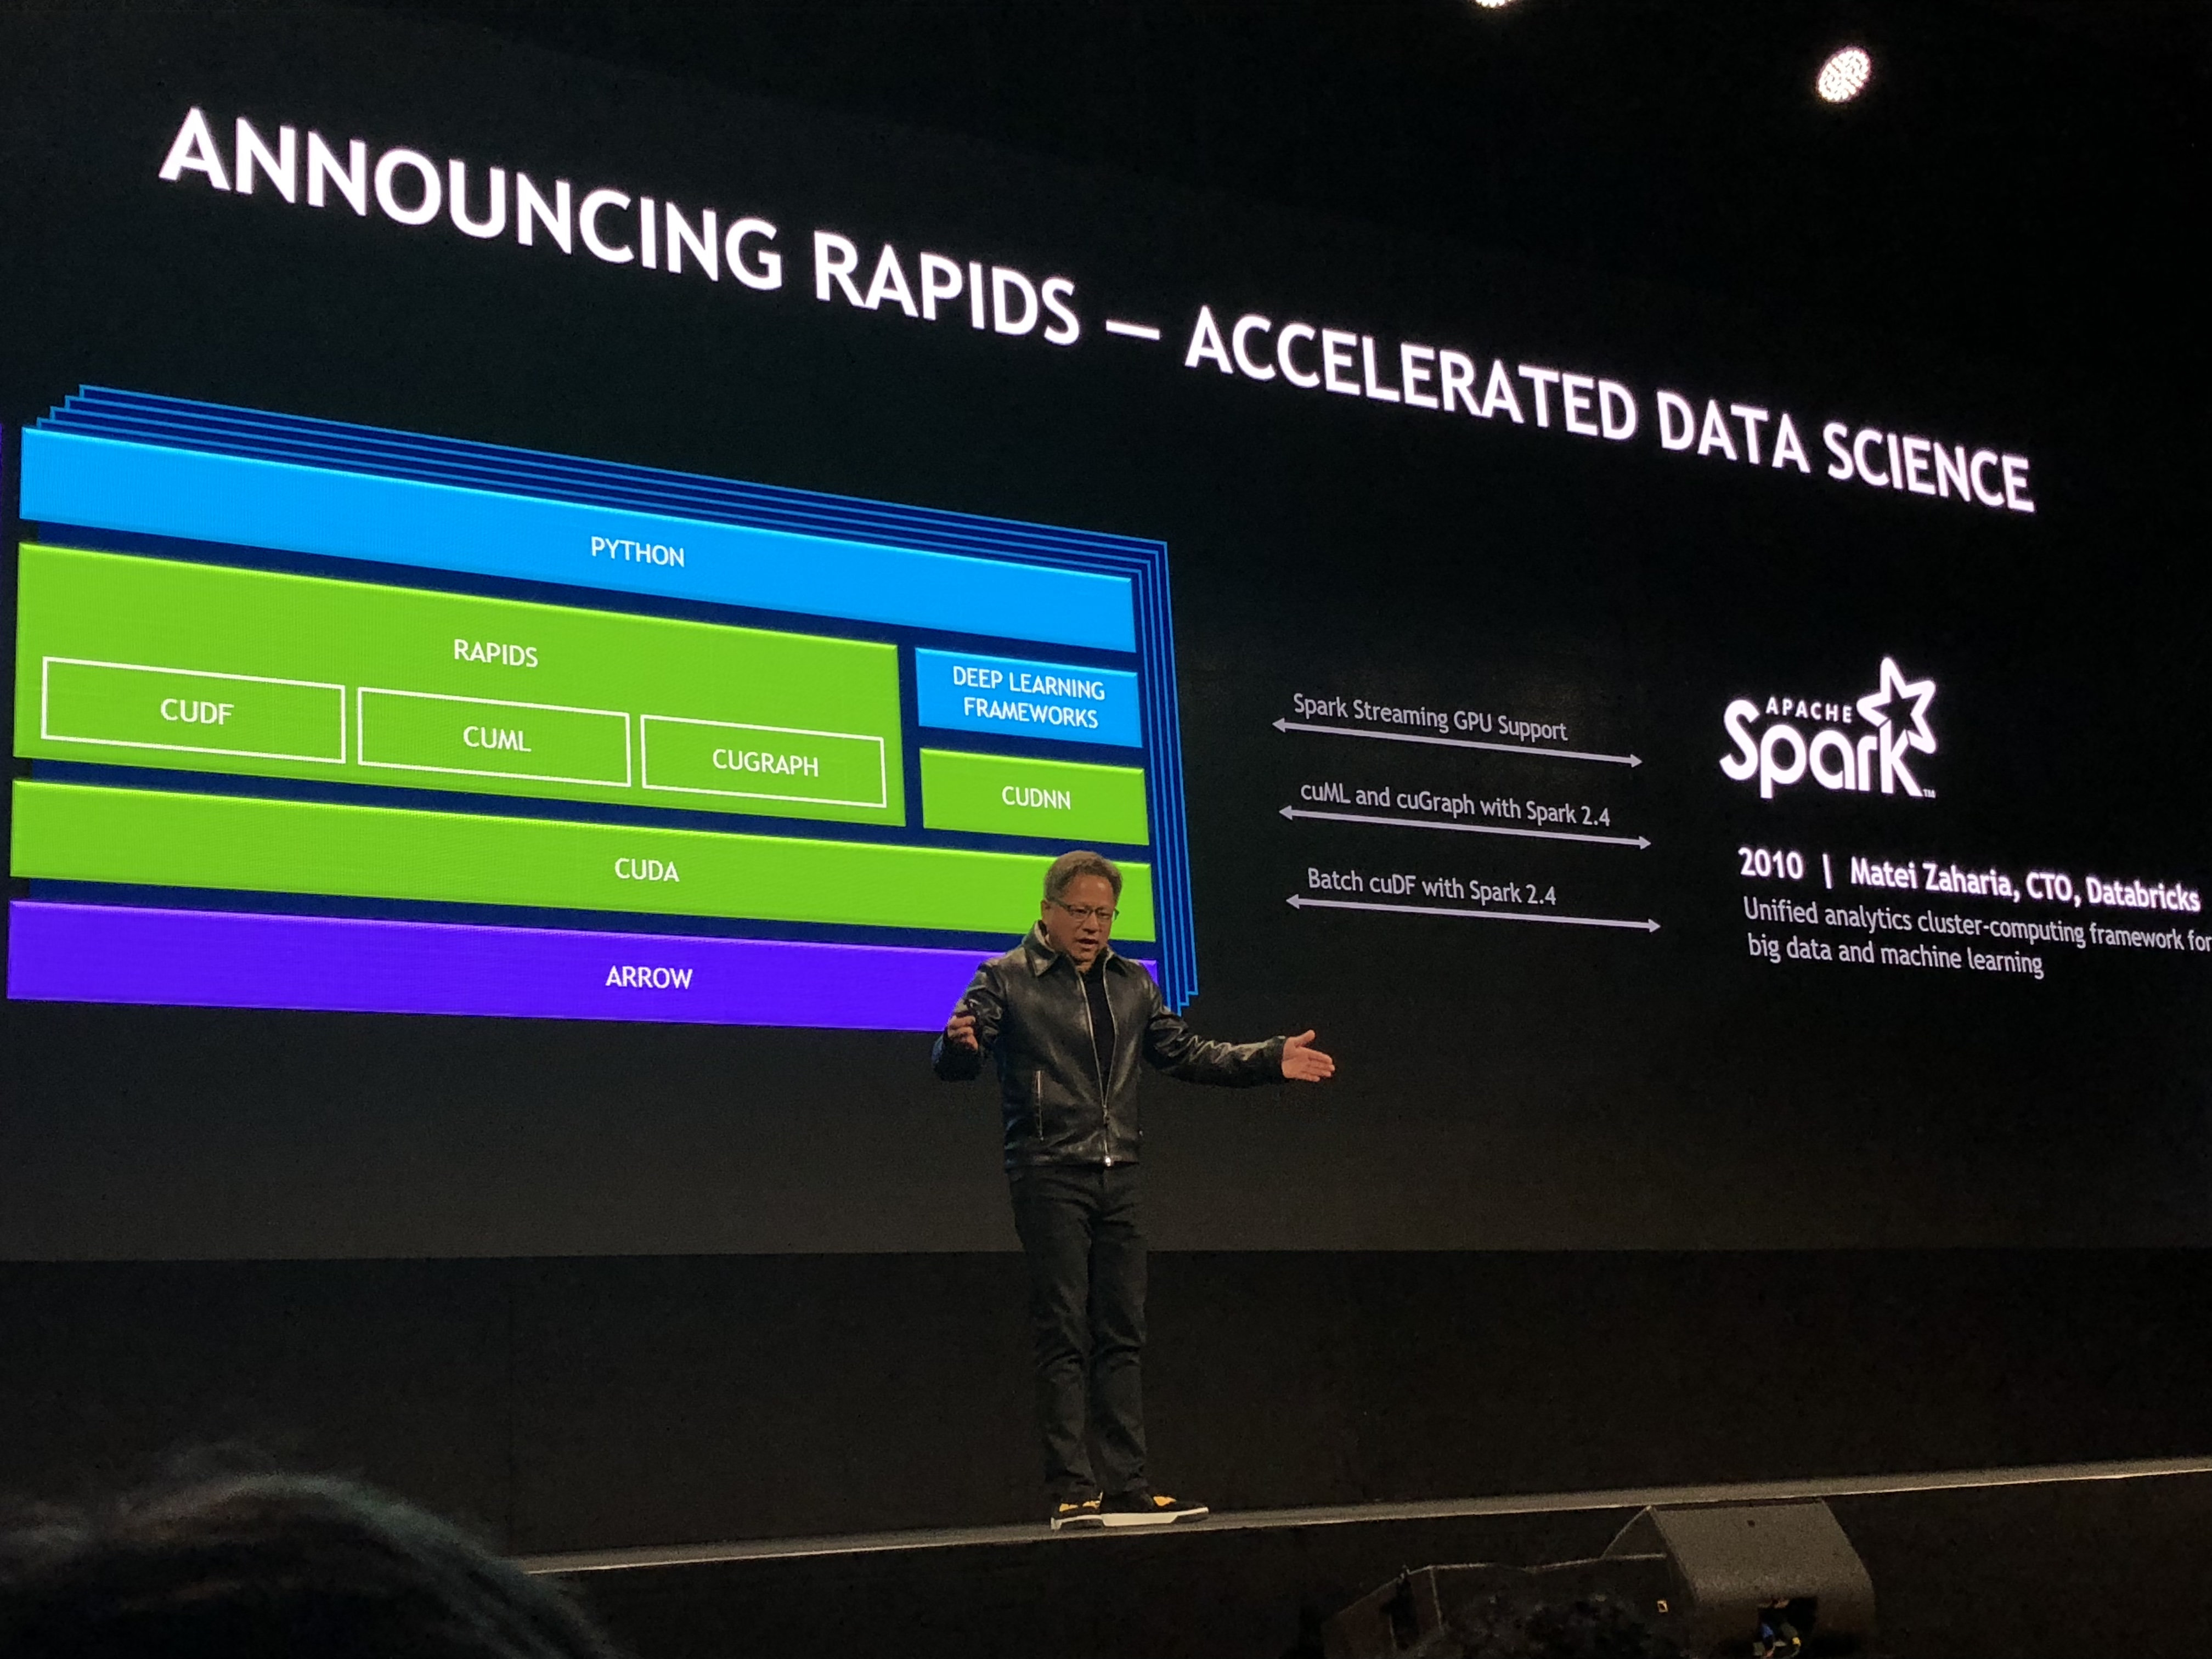 NVIDIA Announces RAPIDS, Medical Image Application, and a Driving